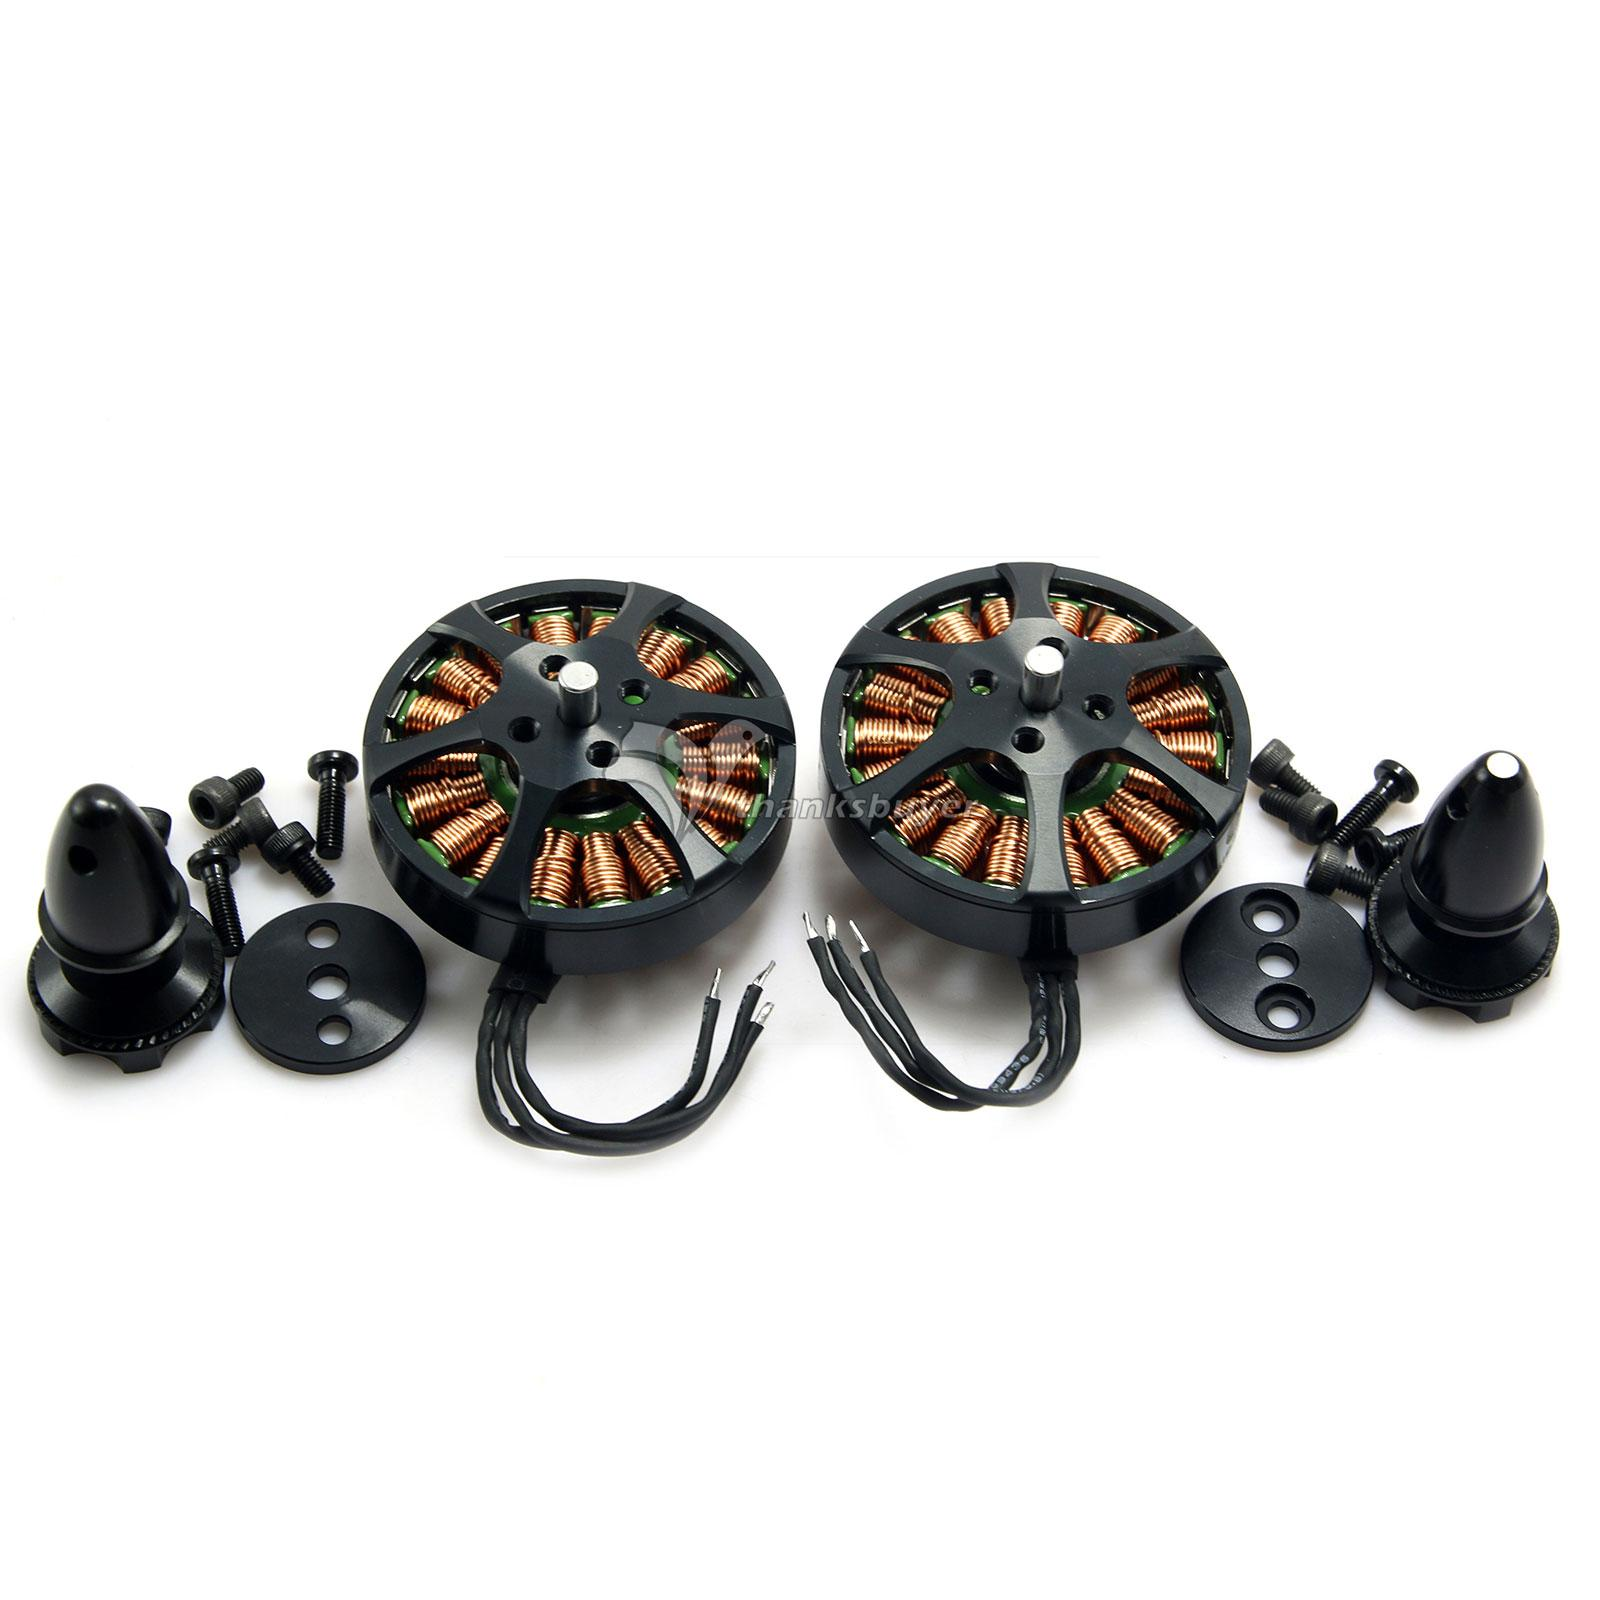 T Motor Antigravity 4006 380KV Motor CW CCW for RC FPV Multicopter Quadcopter 18N24P 1 Pair